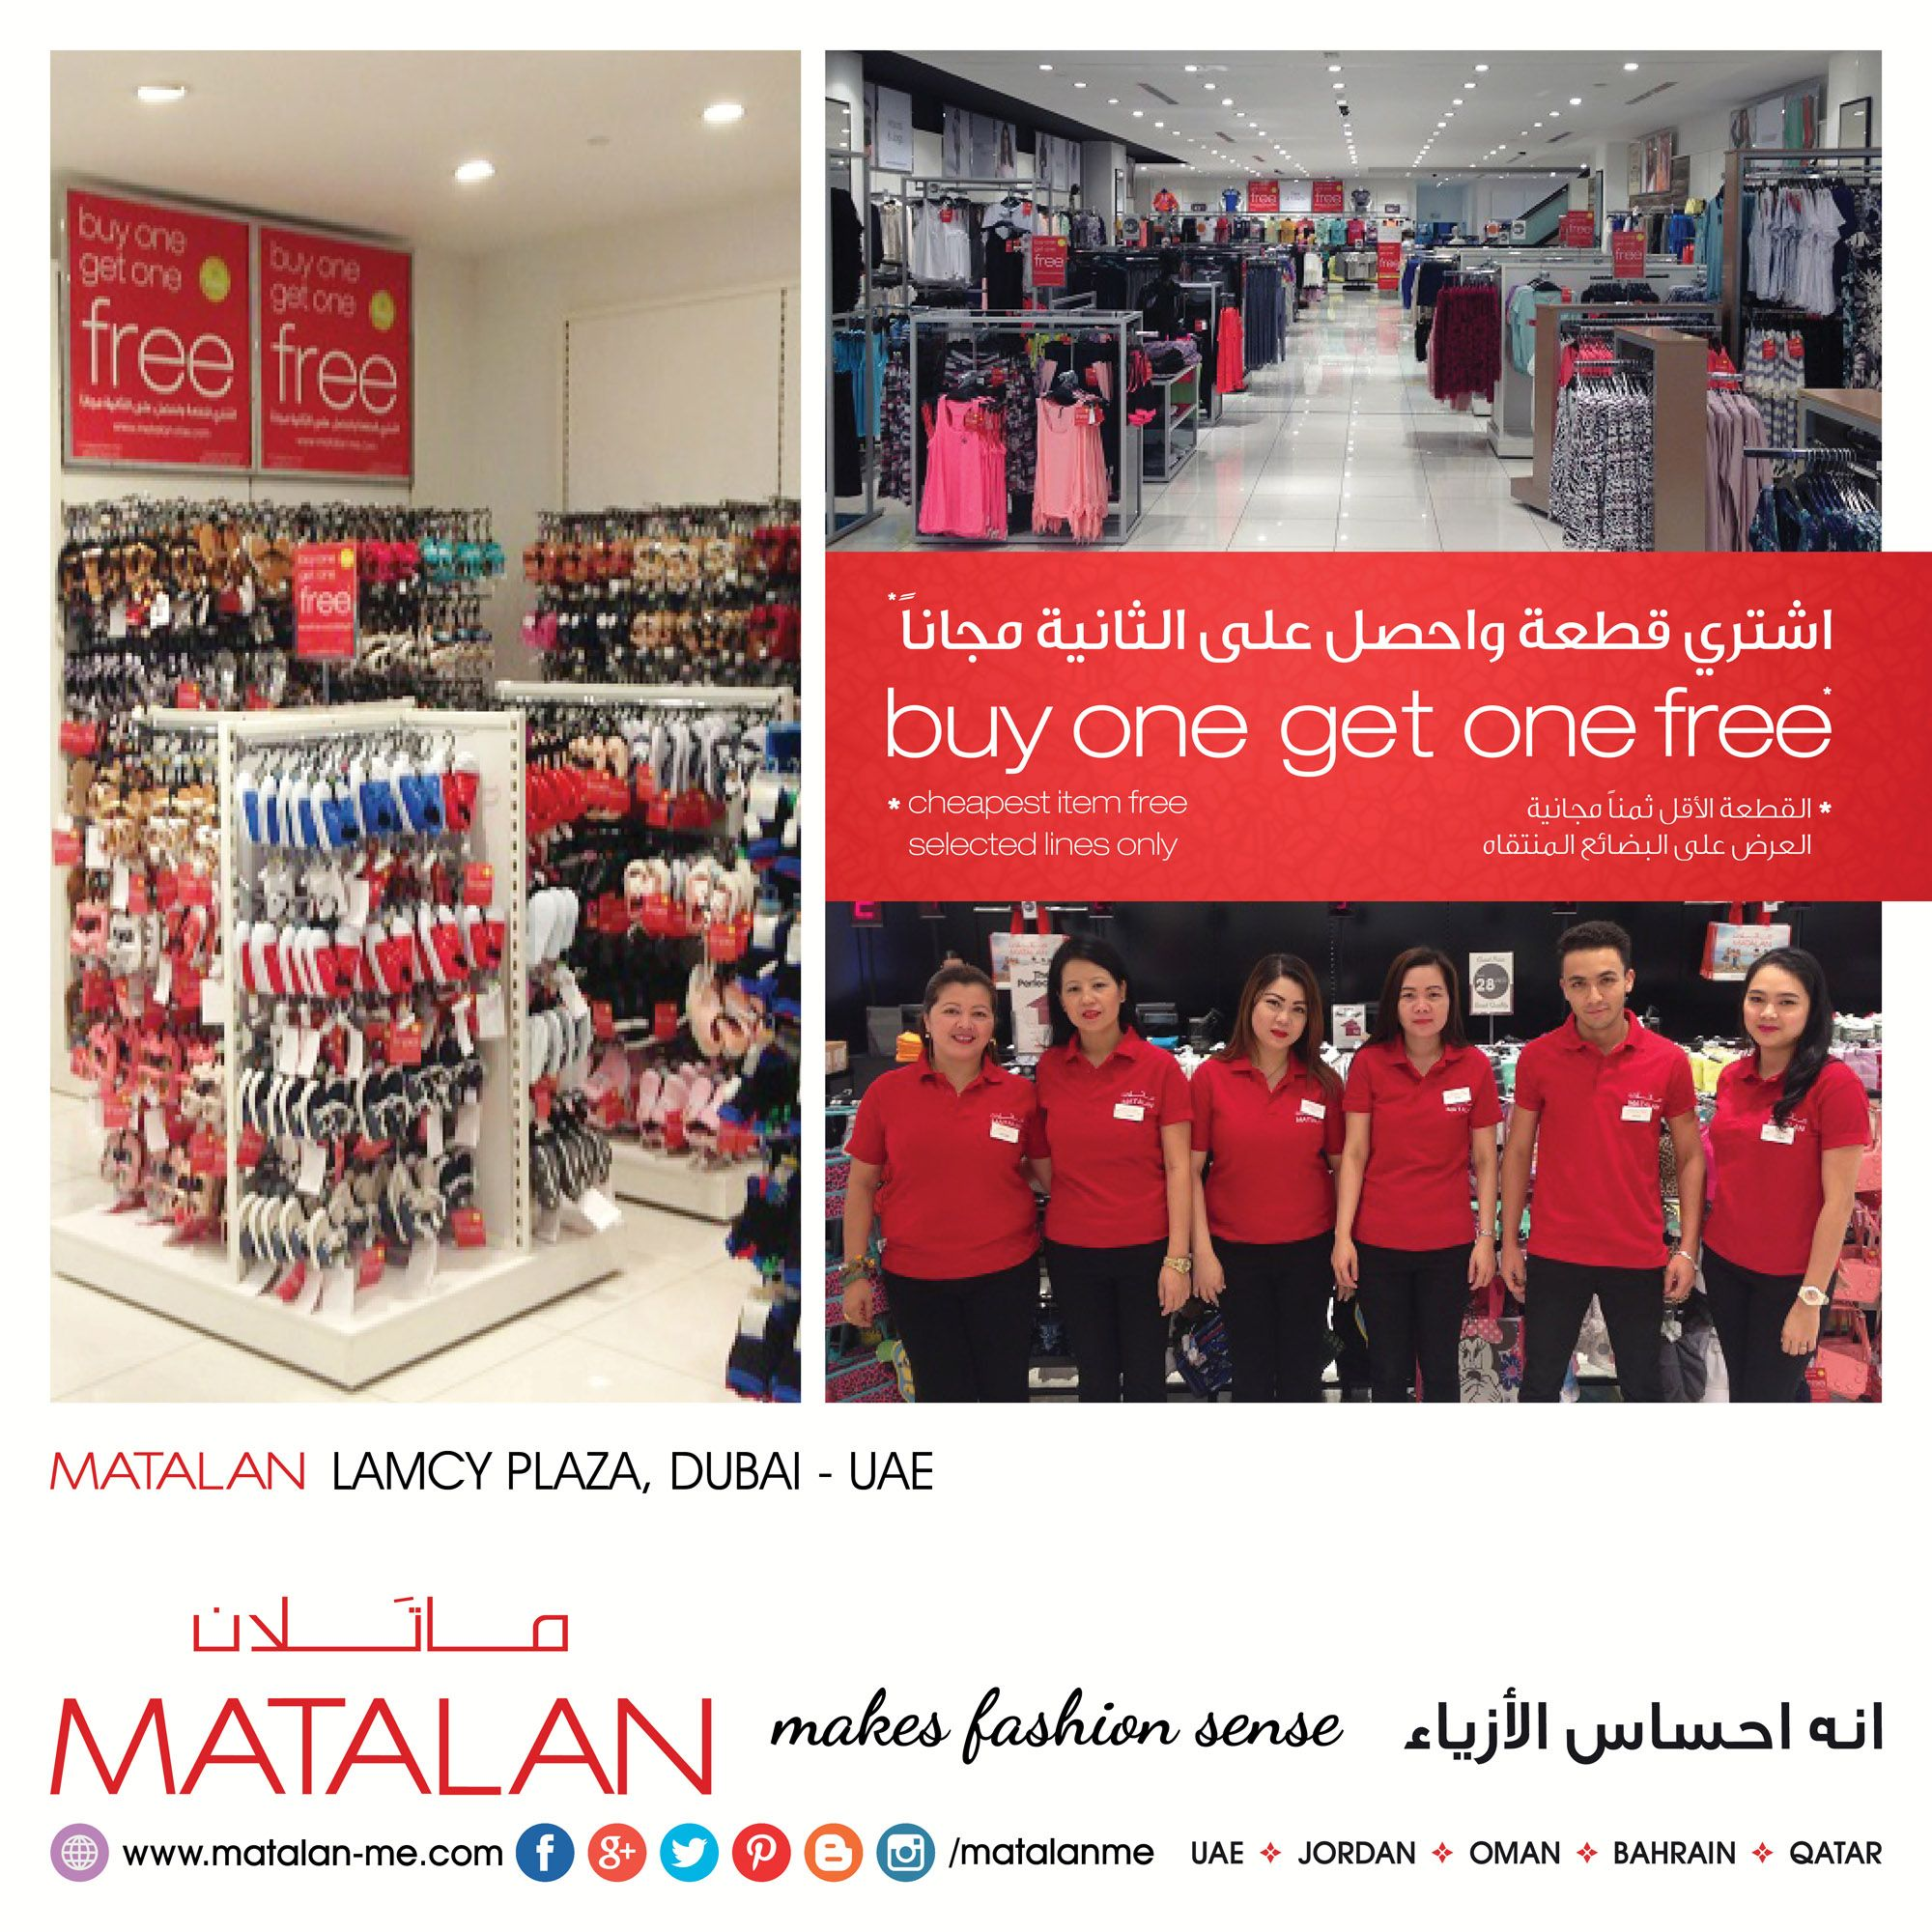 Enjoy BUY 1 GET 1 FREE on selected items at Lamcy Plaza, Dubai! Try